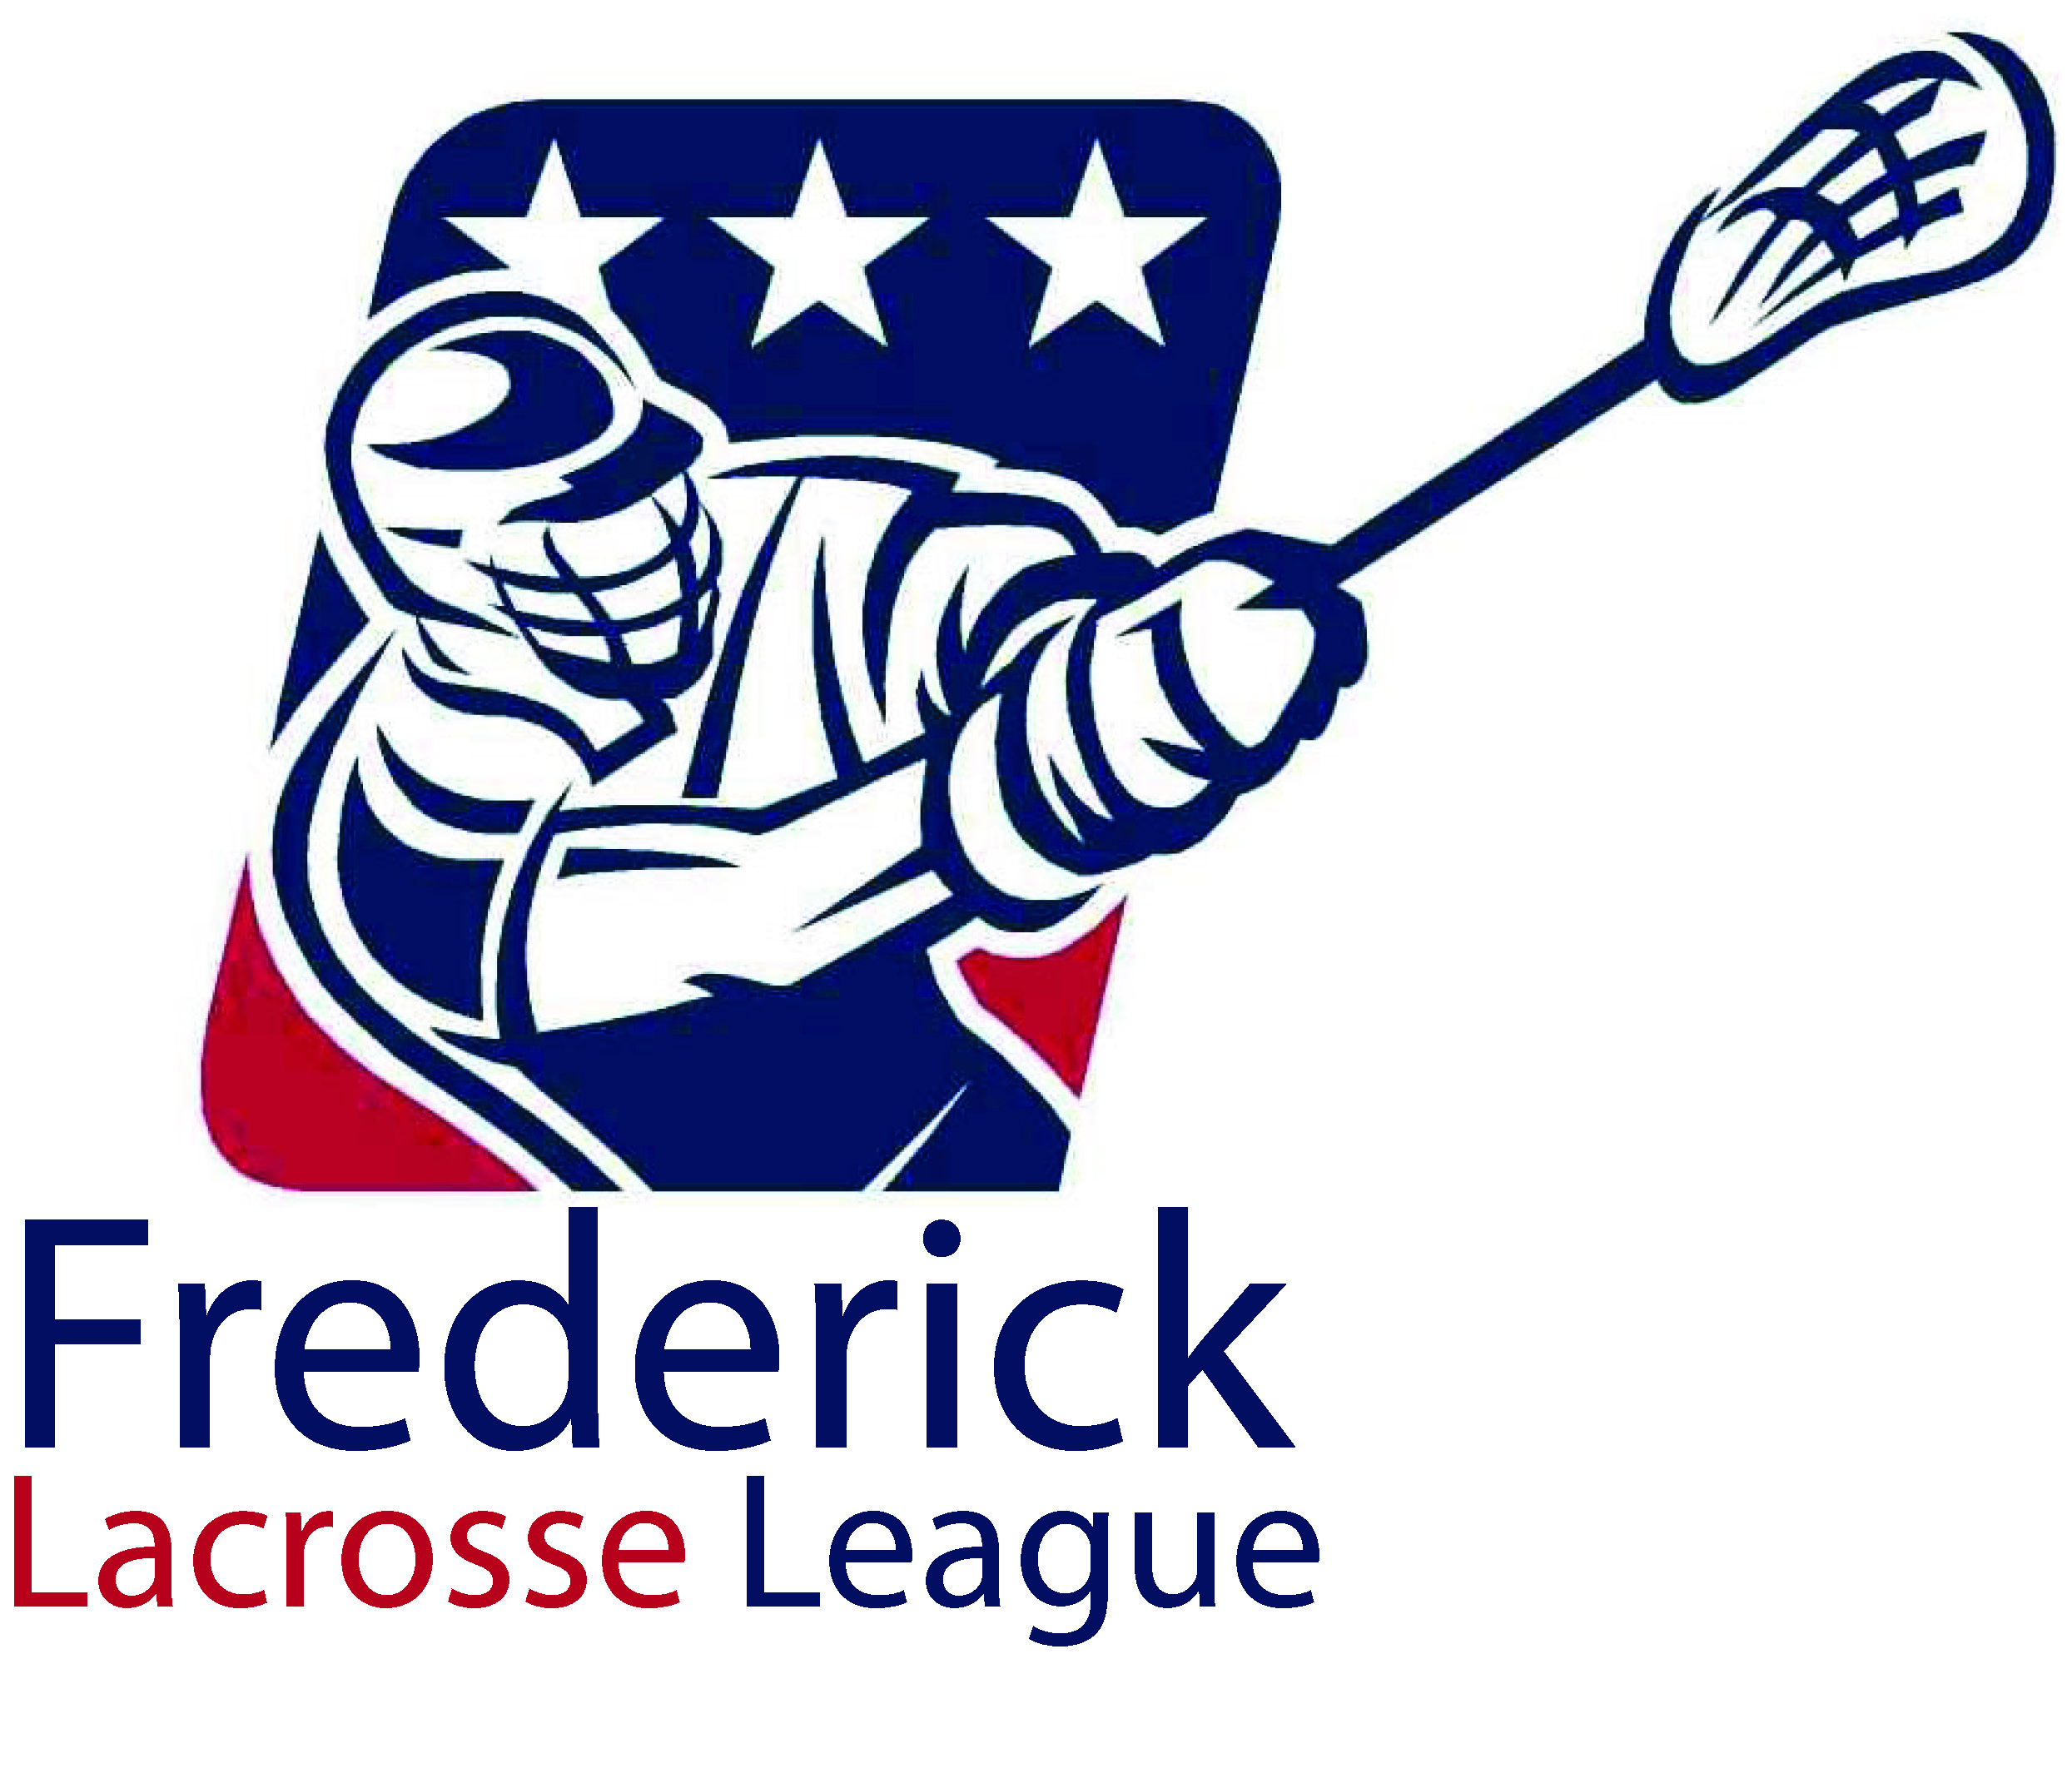 Lacrosse-League.jpg